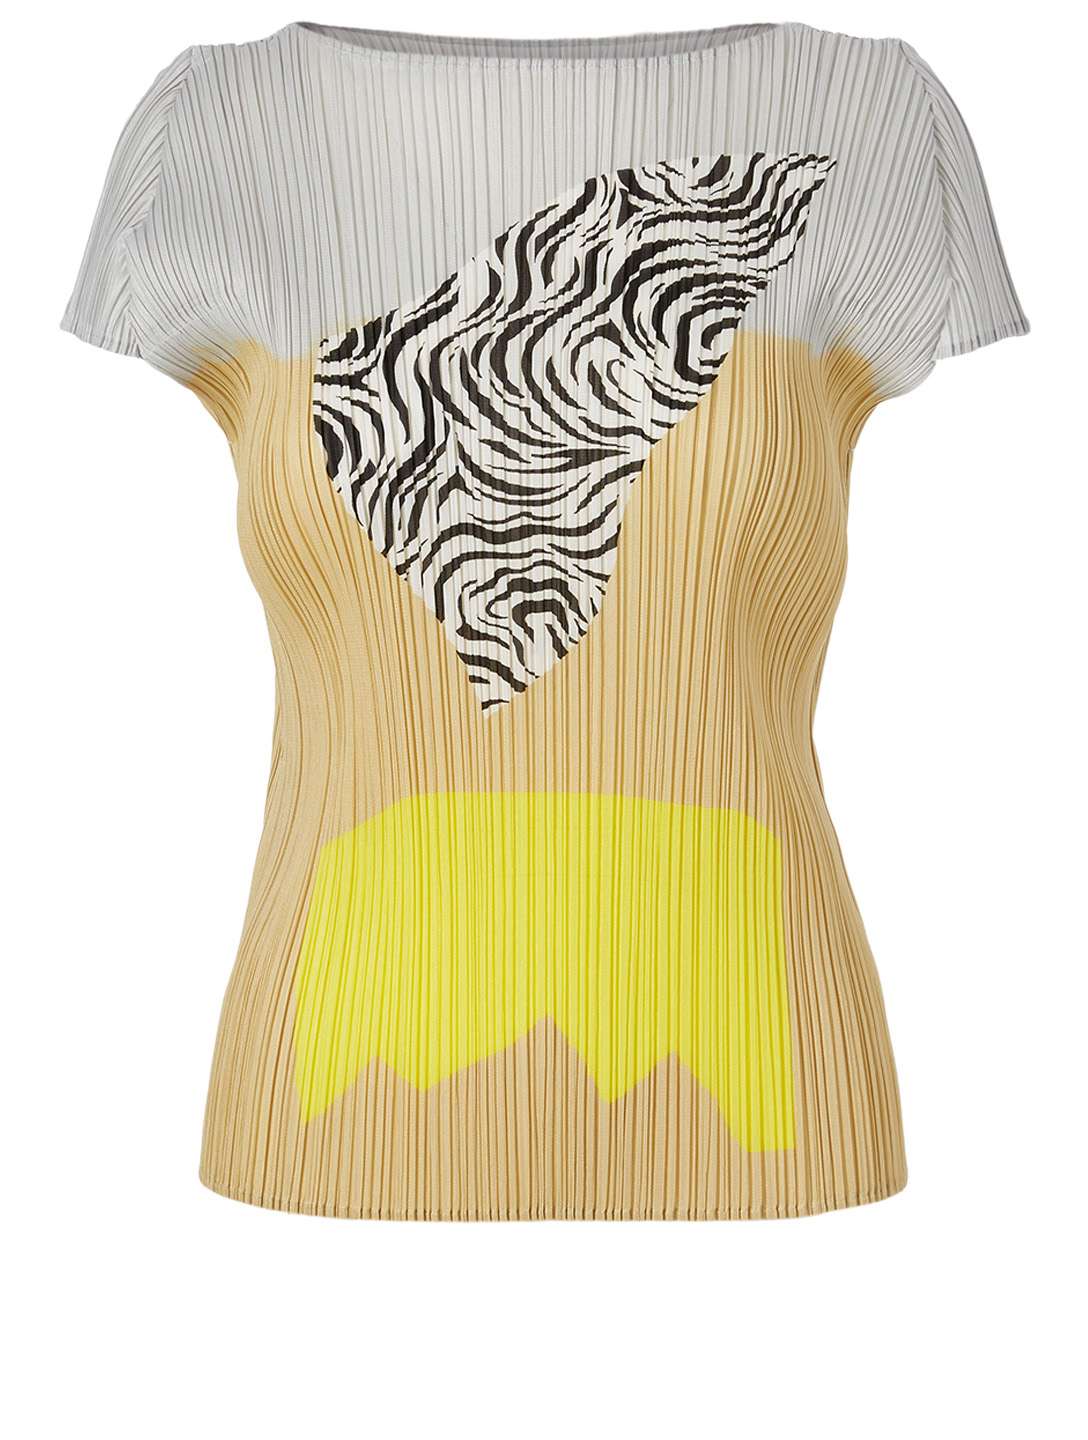 PLEATS PLEASE ISSEY MIYAKE Pleated Short-Sleeve Top Women's Yellow